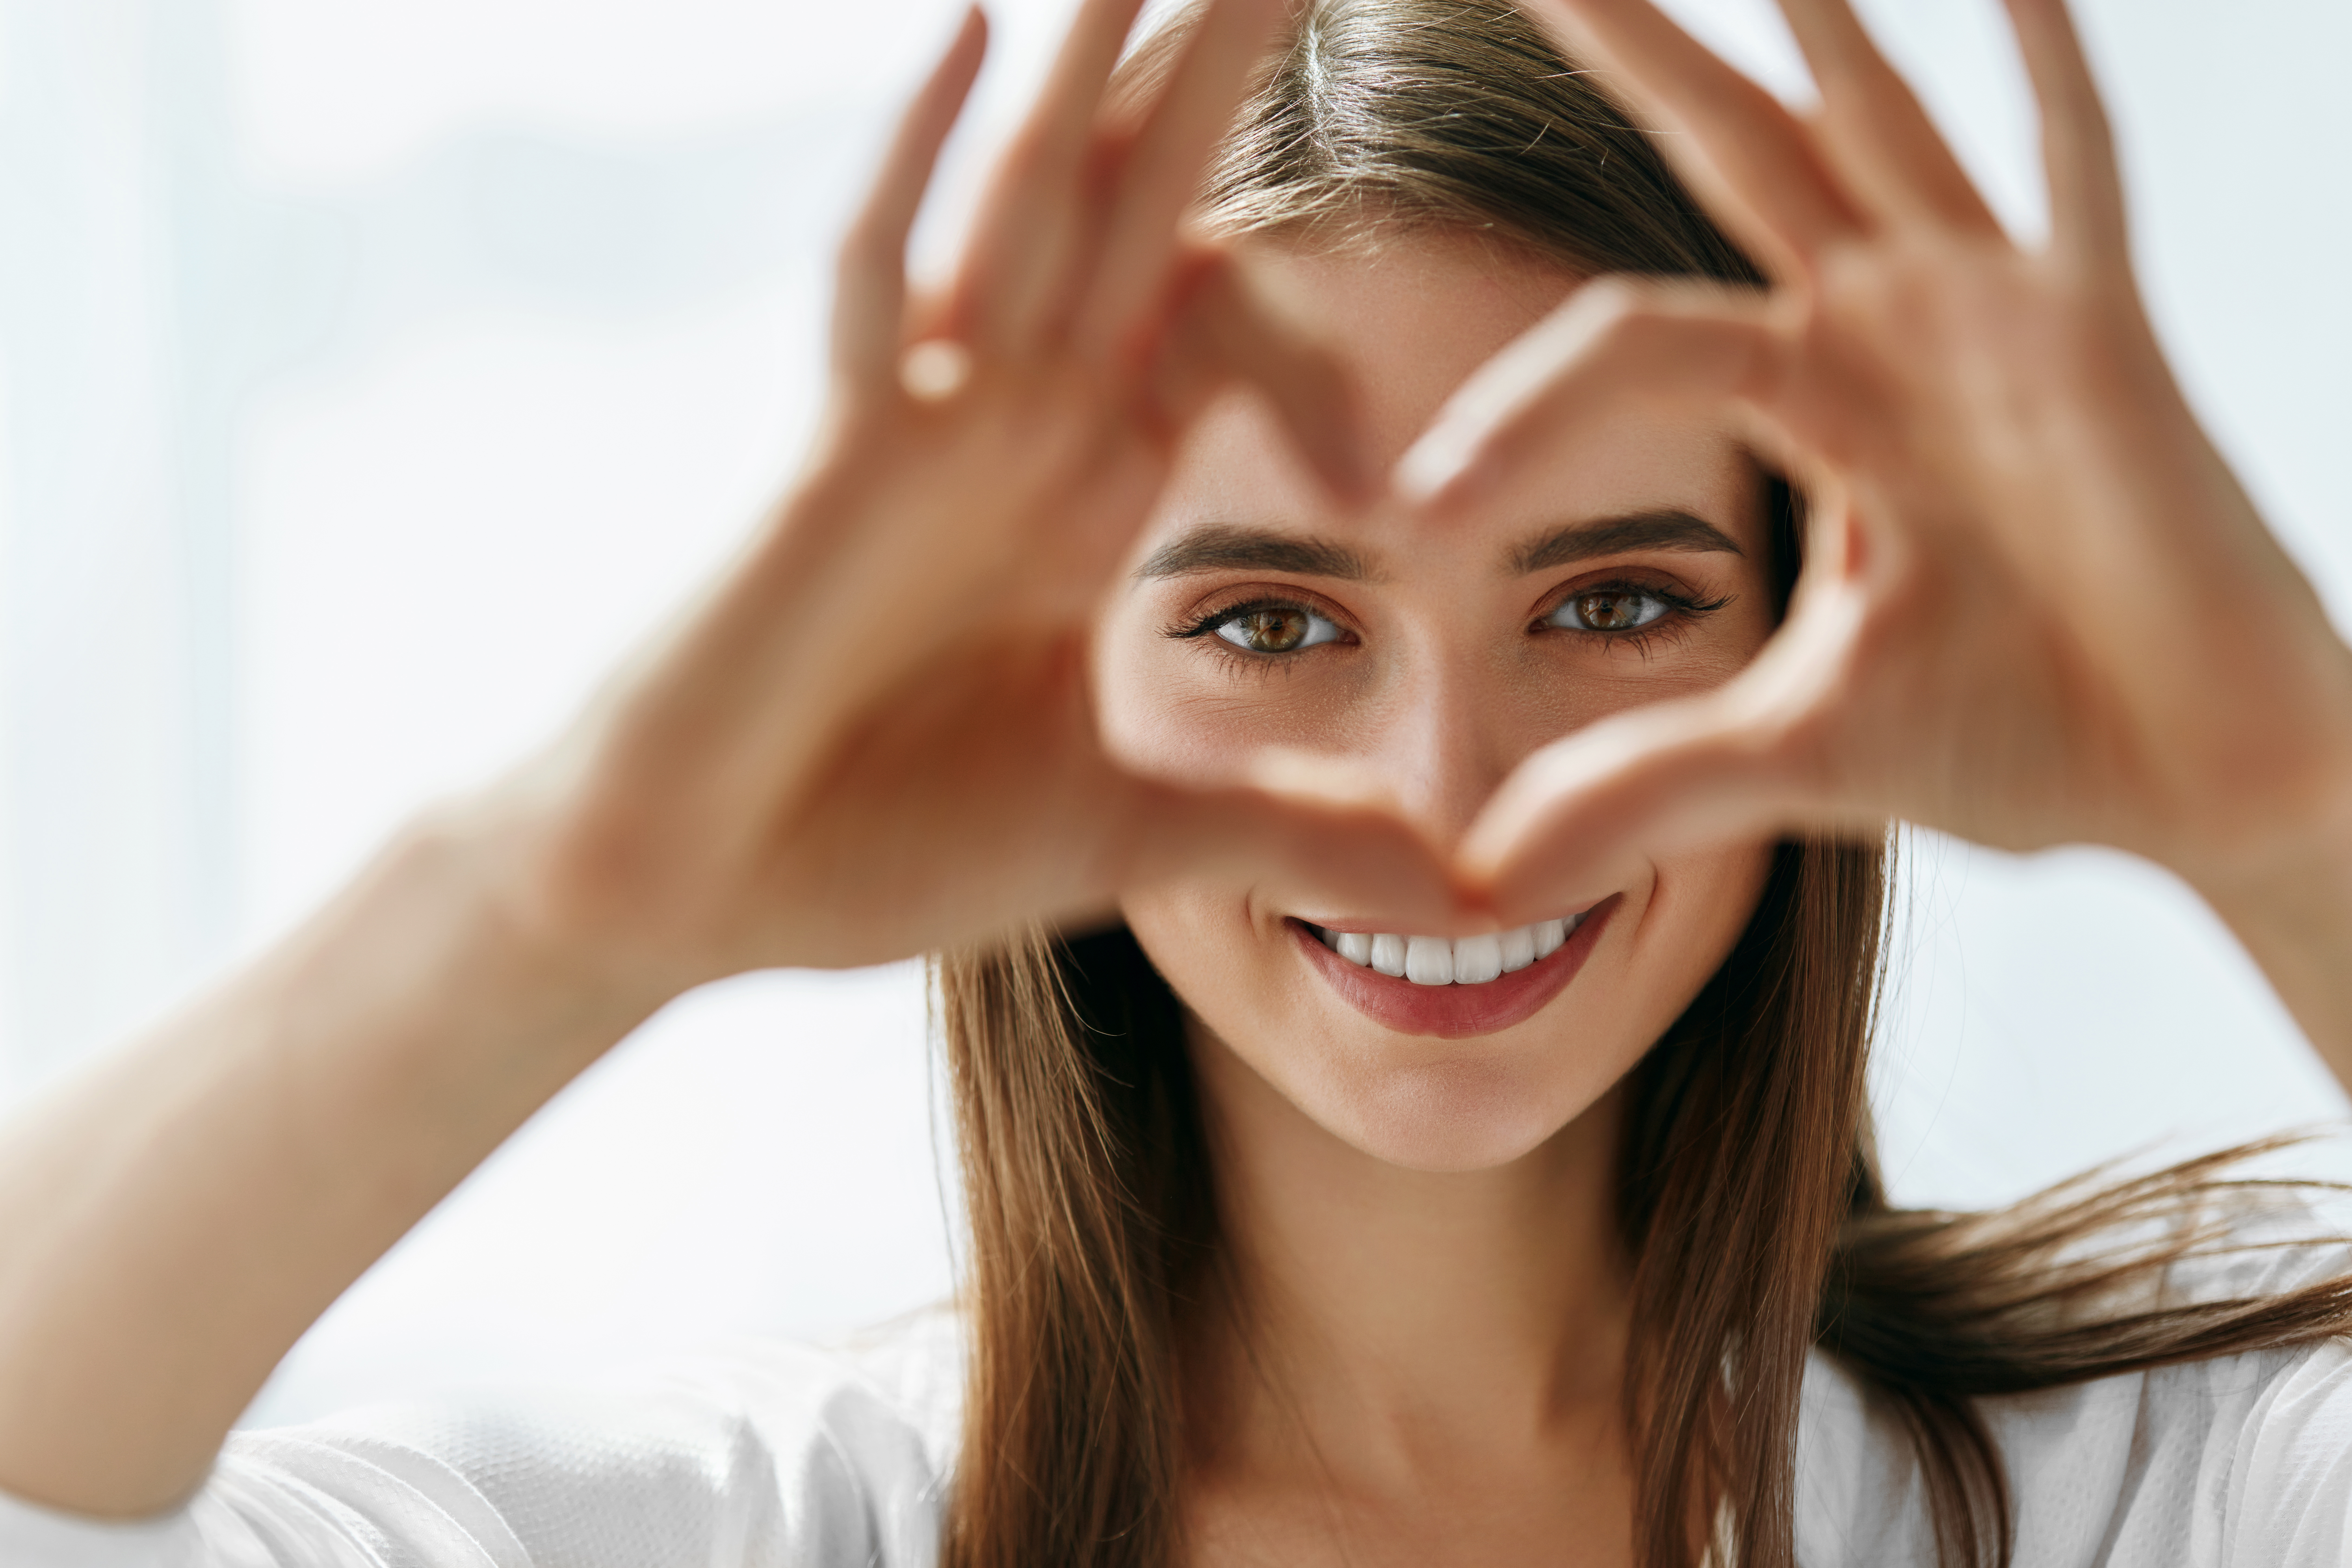 How to Heart Your Heart